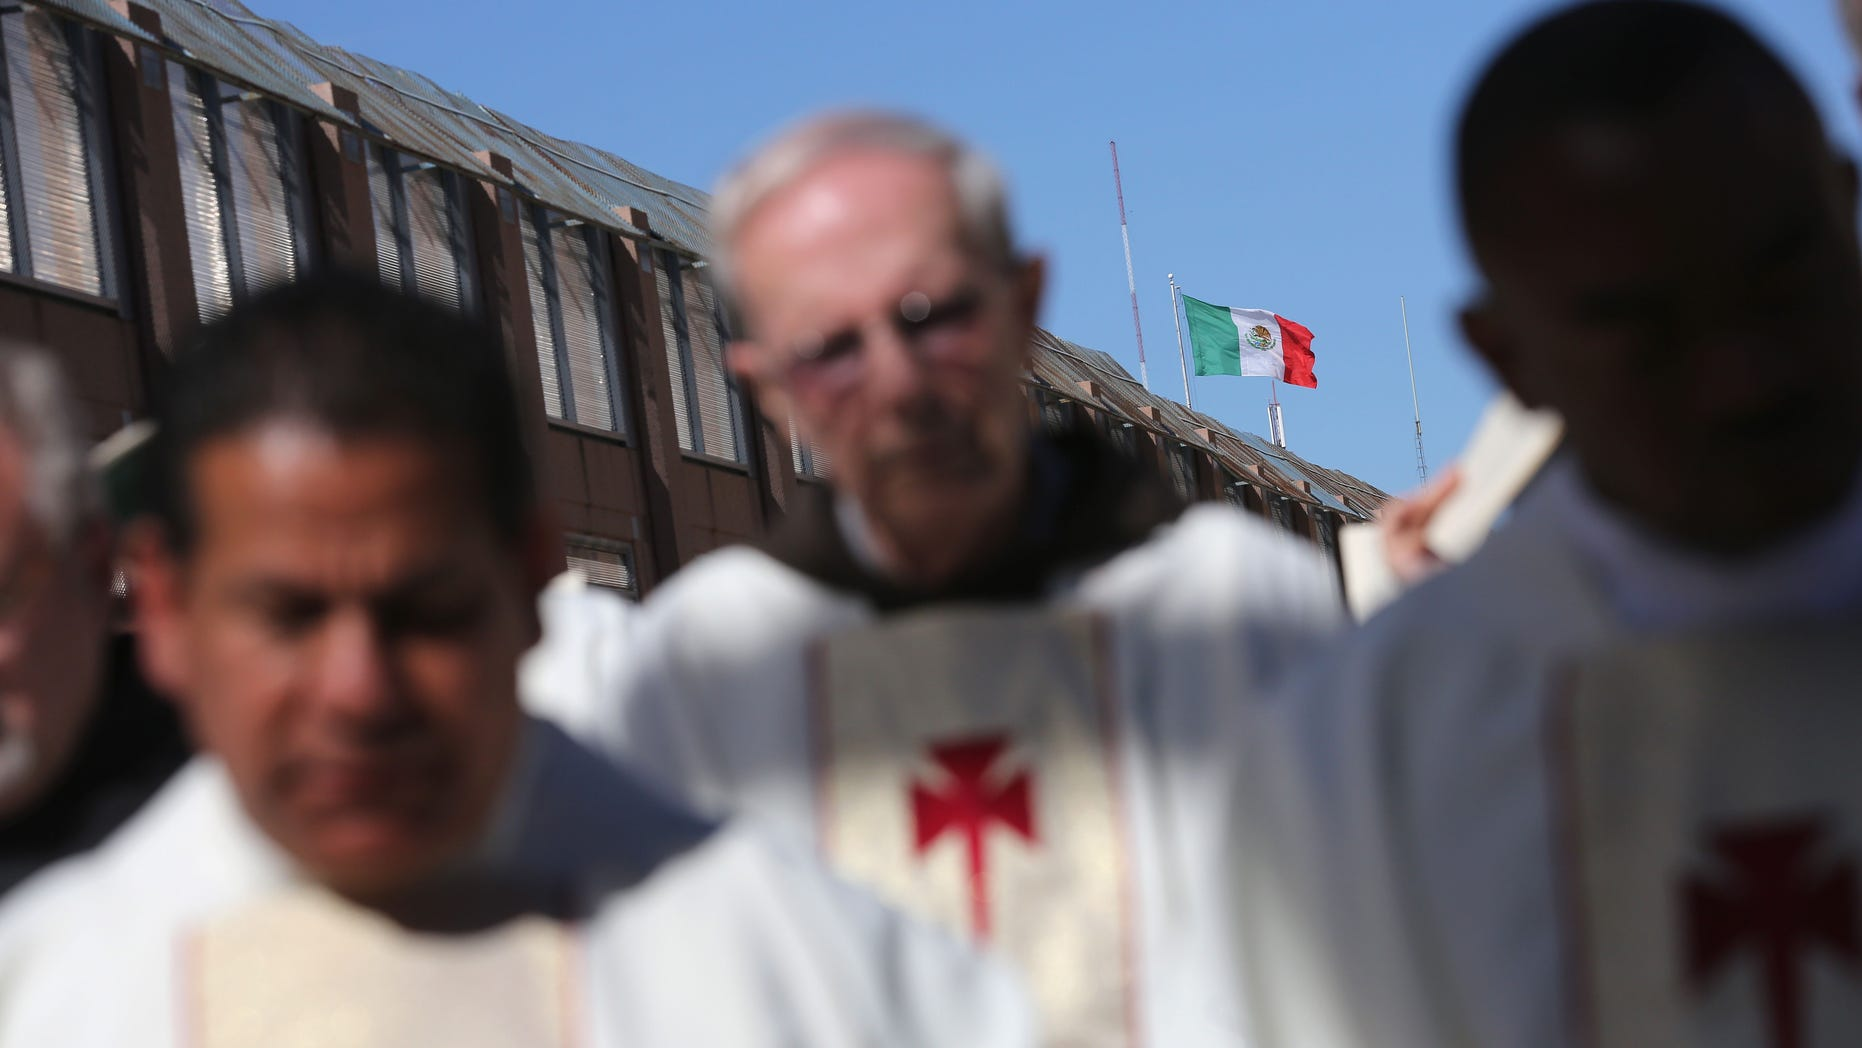 NOGALES, AZ - APRIL 01:  Catholic clergy pray during a special 'Mass on the Border' on April 1, 2014 in Nogales, Arizona. Catholic bishops led by the Archbishop of Boston Cardinal Sean O'Malley held the mass at the U.S.-Mexico border fence to pray for comprehensive immigration reform and for those who have died along the border.  (Photo by John Moore/Getty Images)